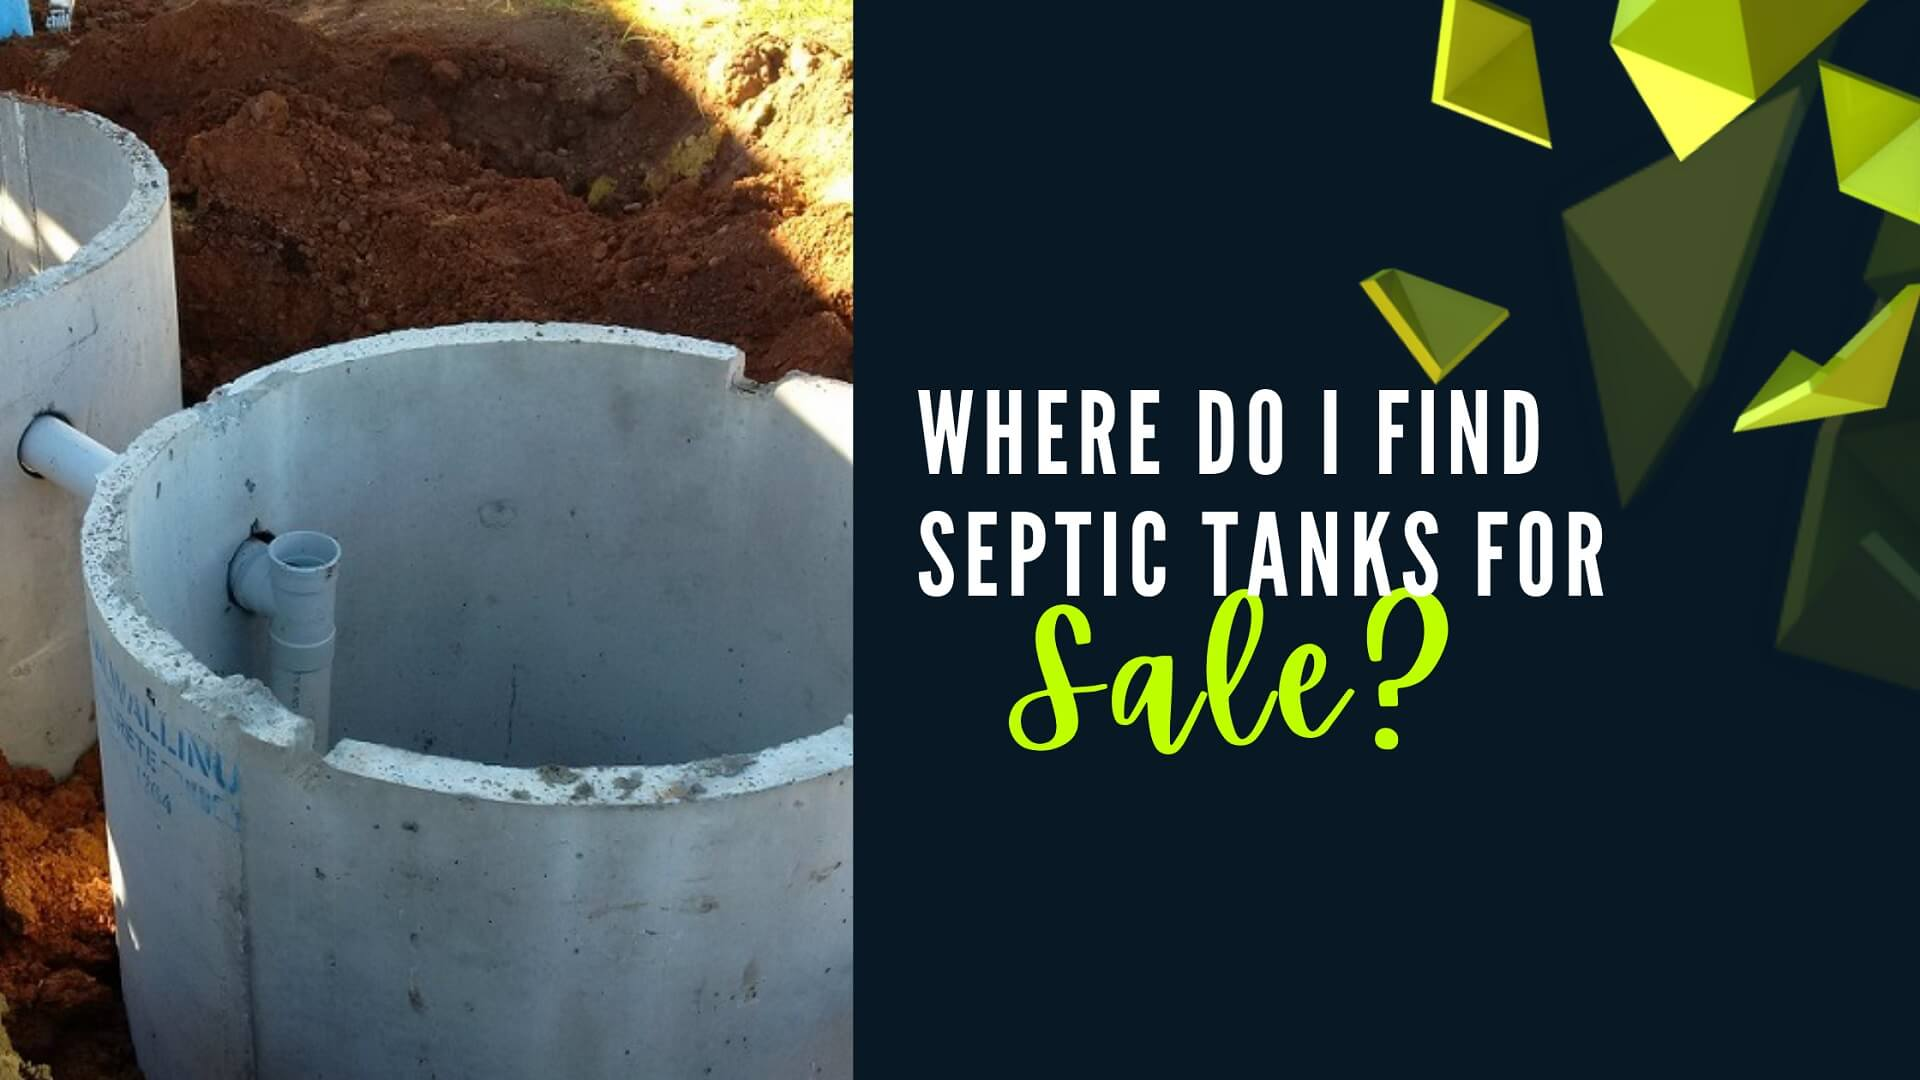 Where do I find septic tanks for sale?